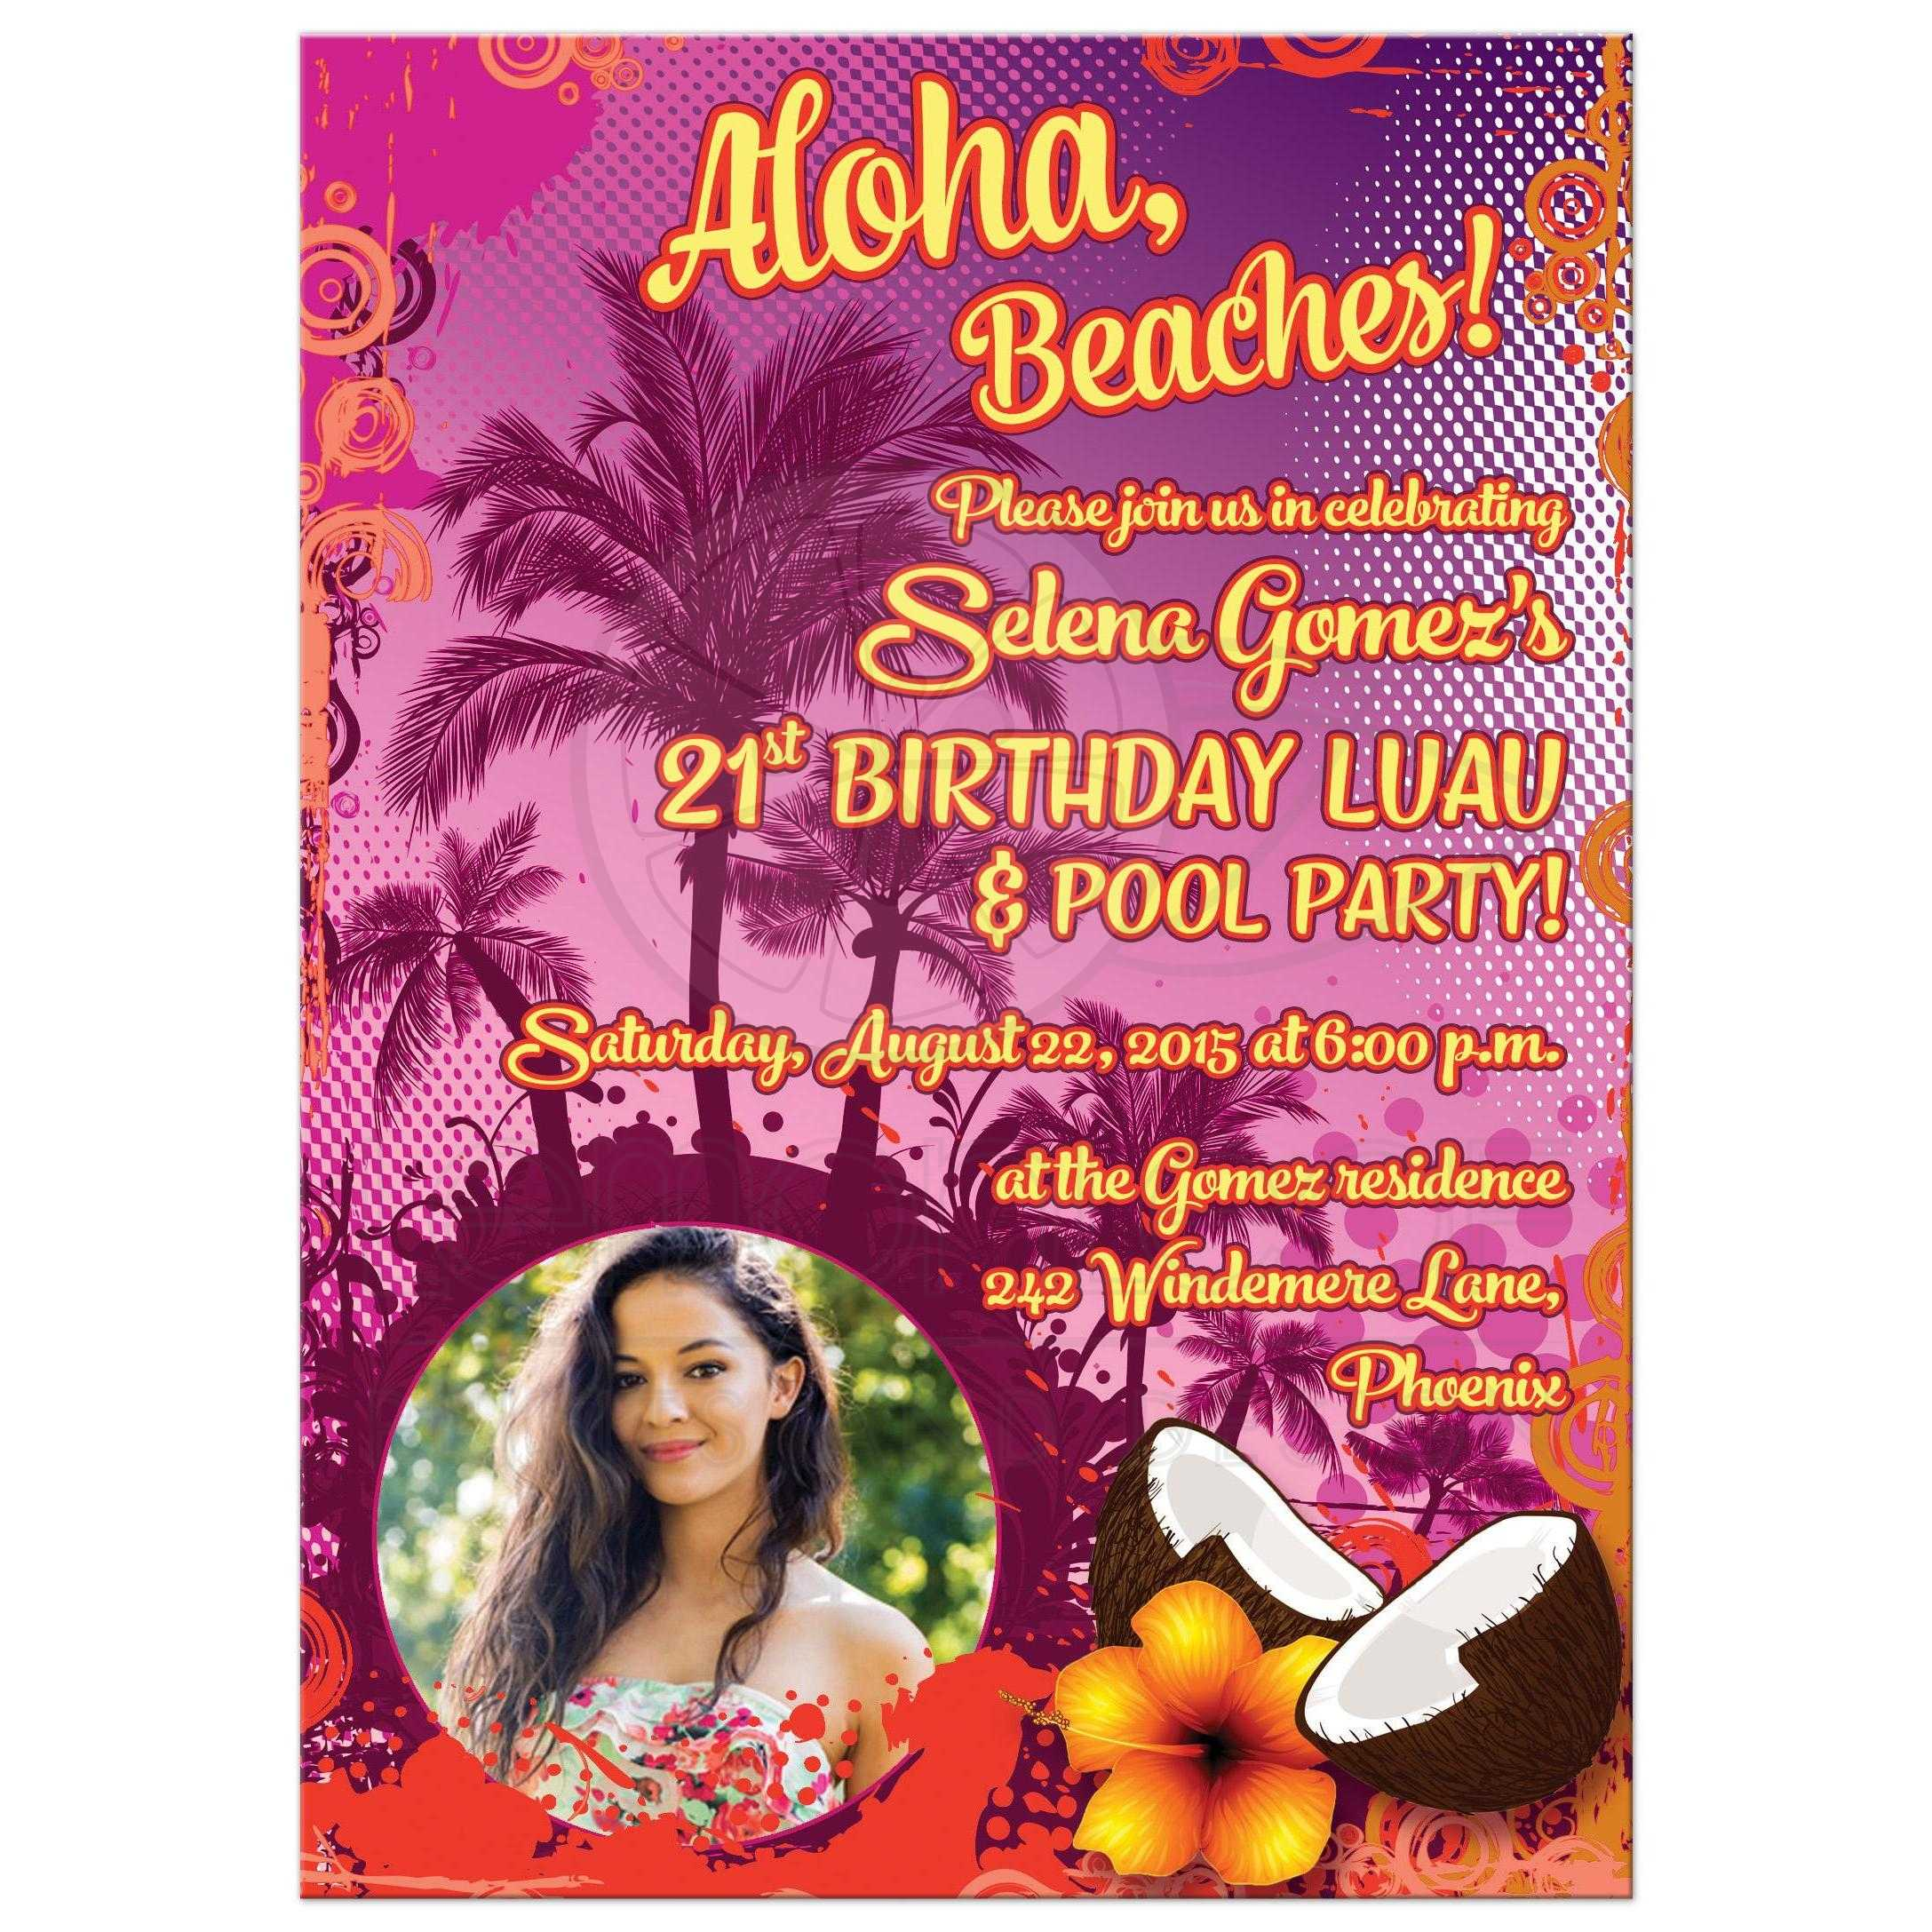 21st Birthday Party Invitation | Photo | Hawaiian Luau